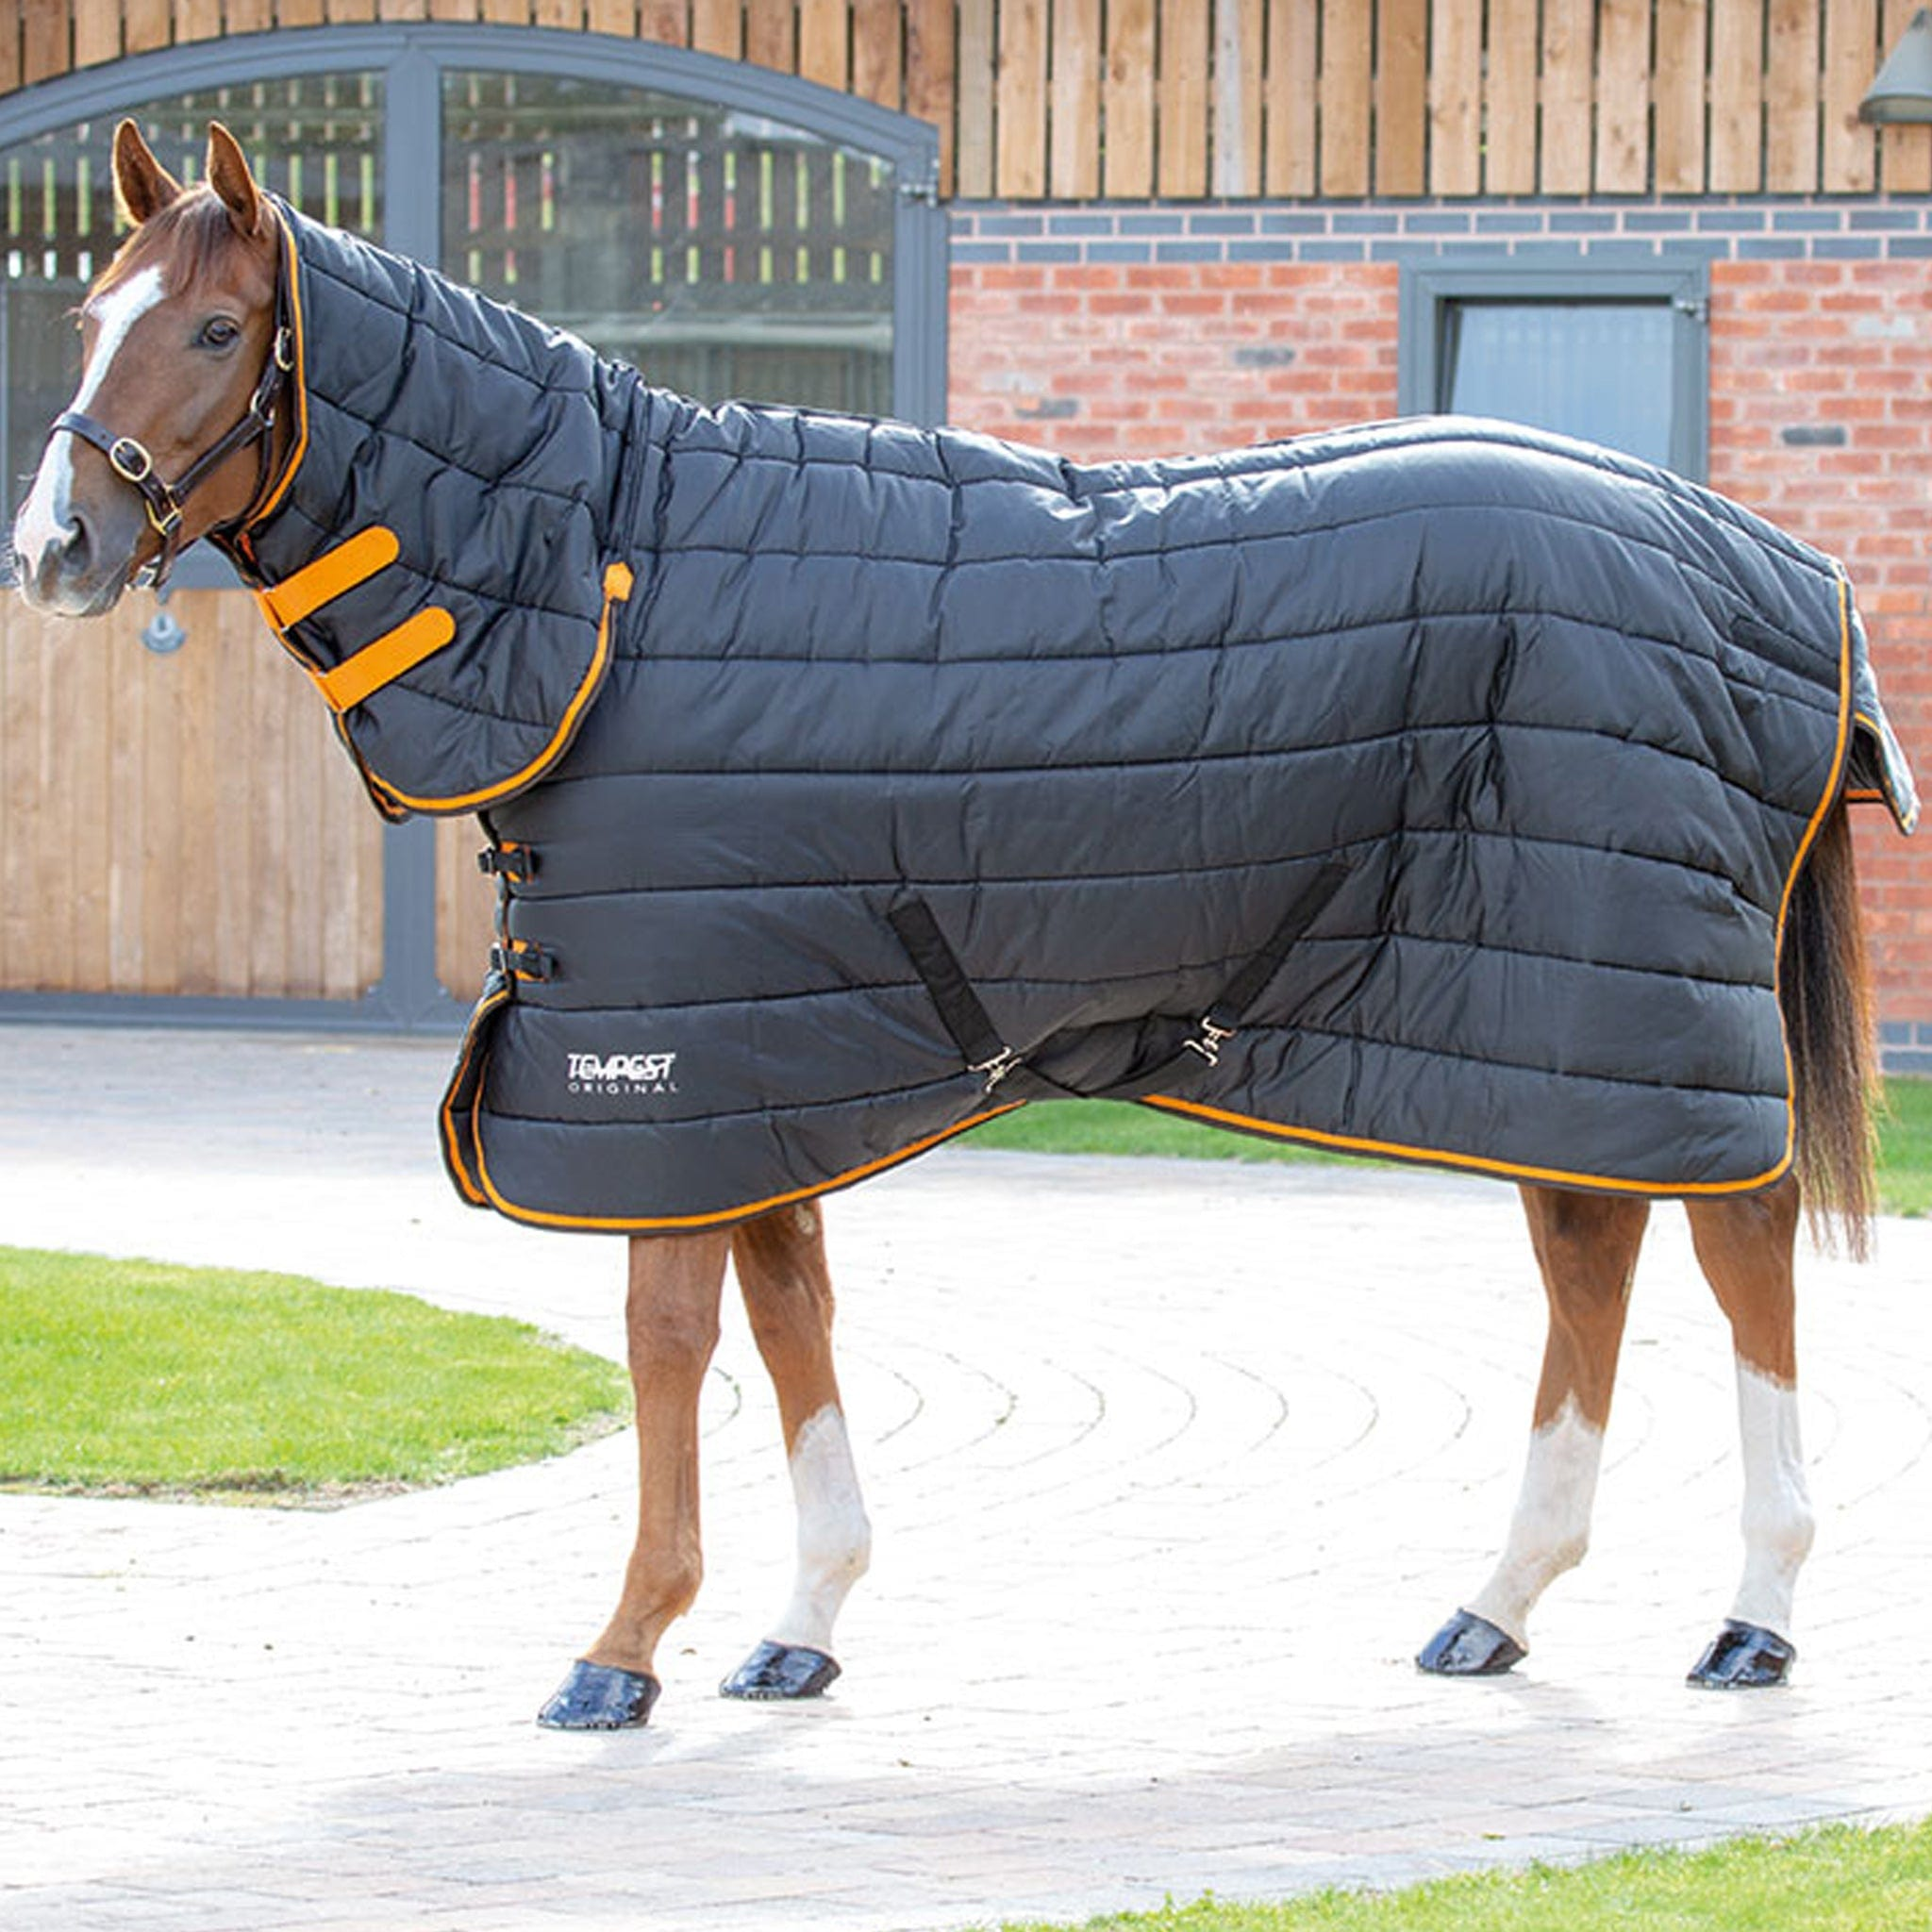 Shires Tempest Original Heavyweight 300g Combo Stable Rug Black And Orange 9341.